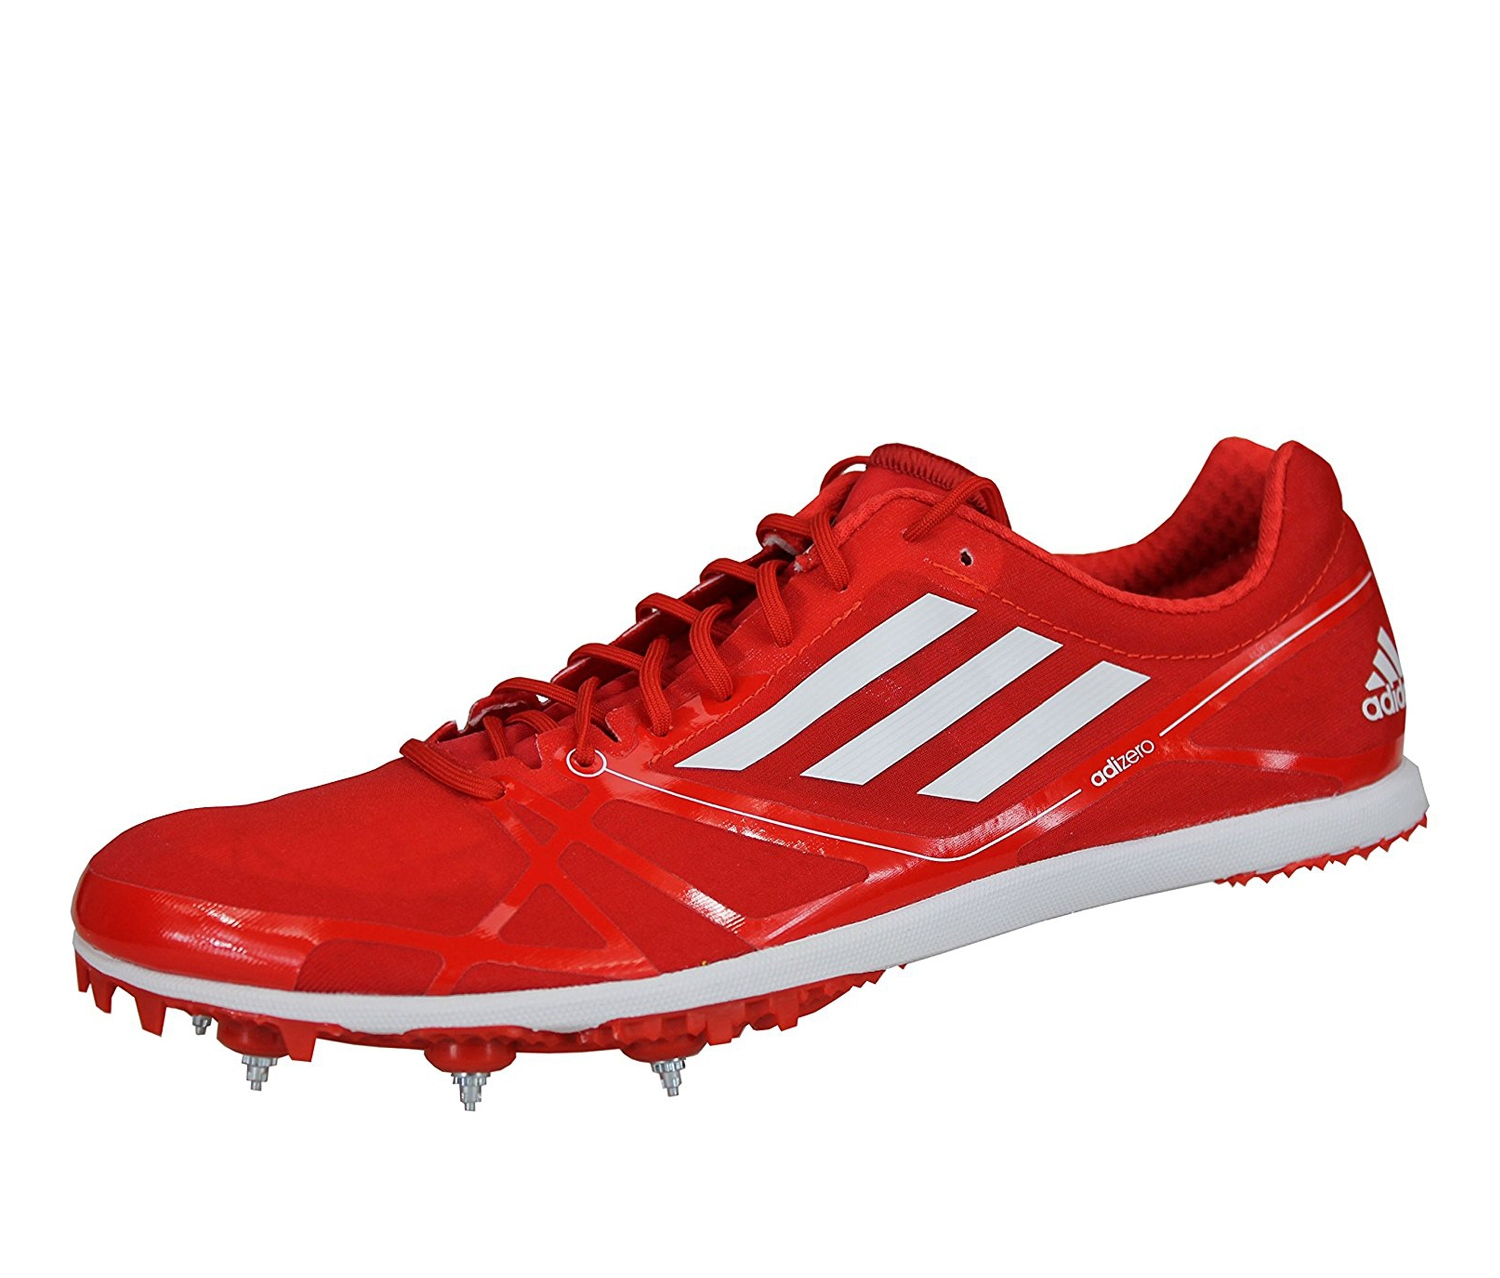 Shop Adidas Adizero Avanti 2 Spikes Men's Running Shoes, Red